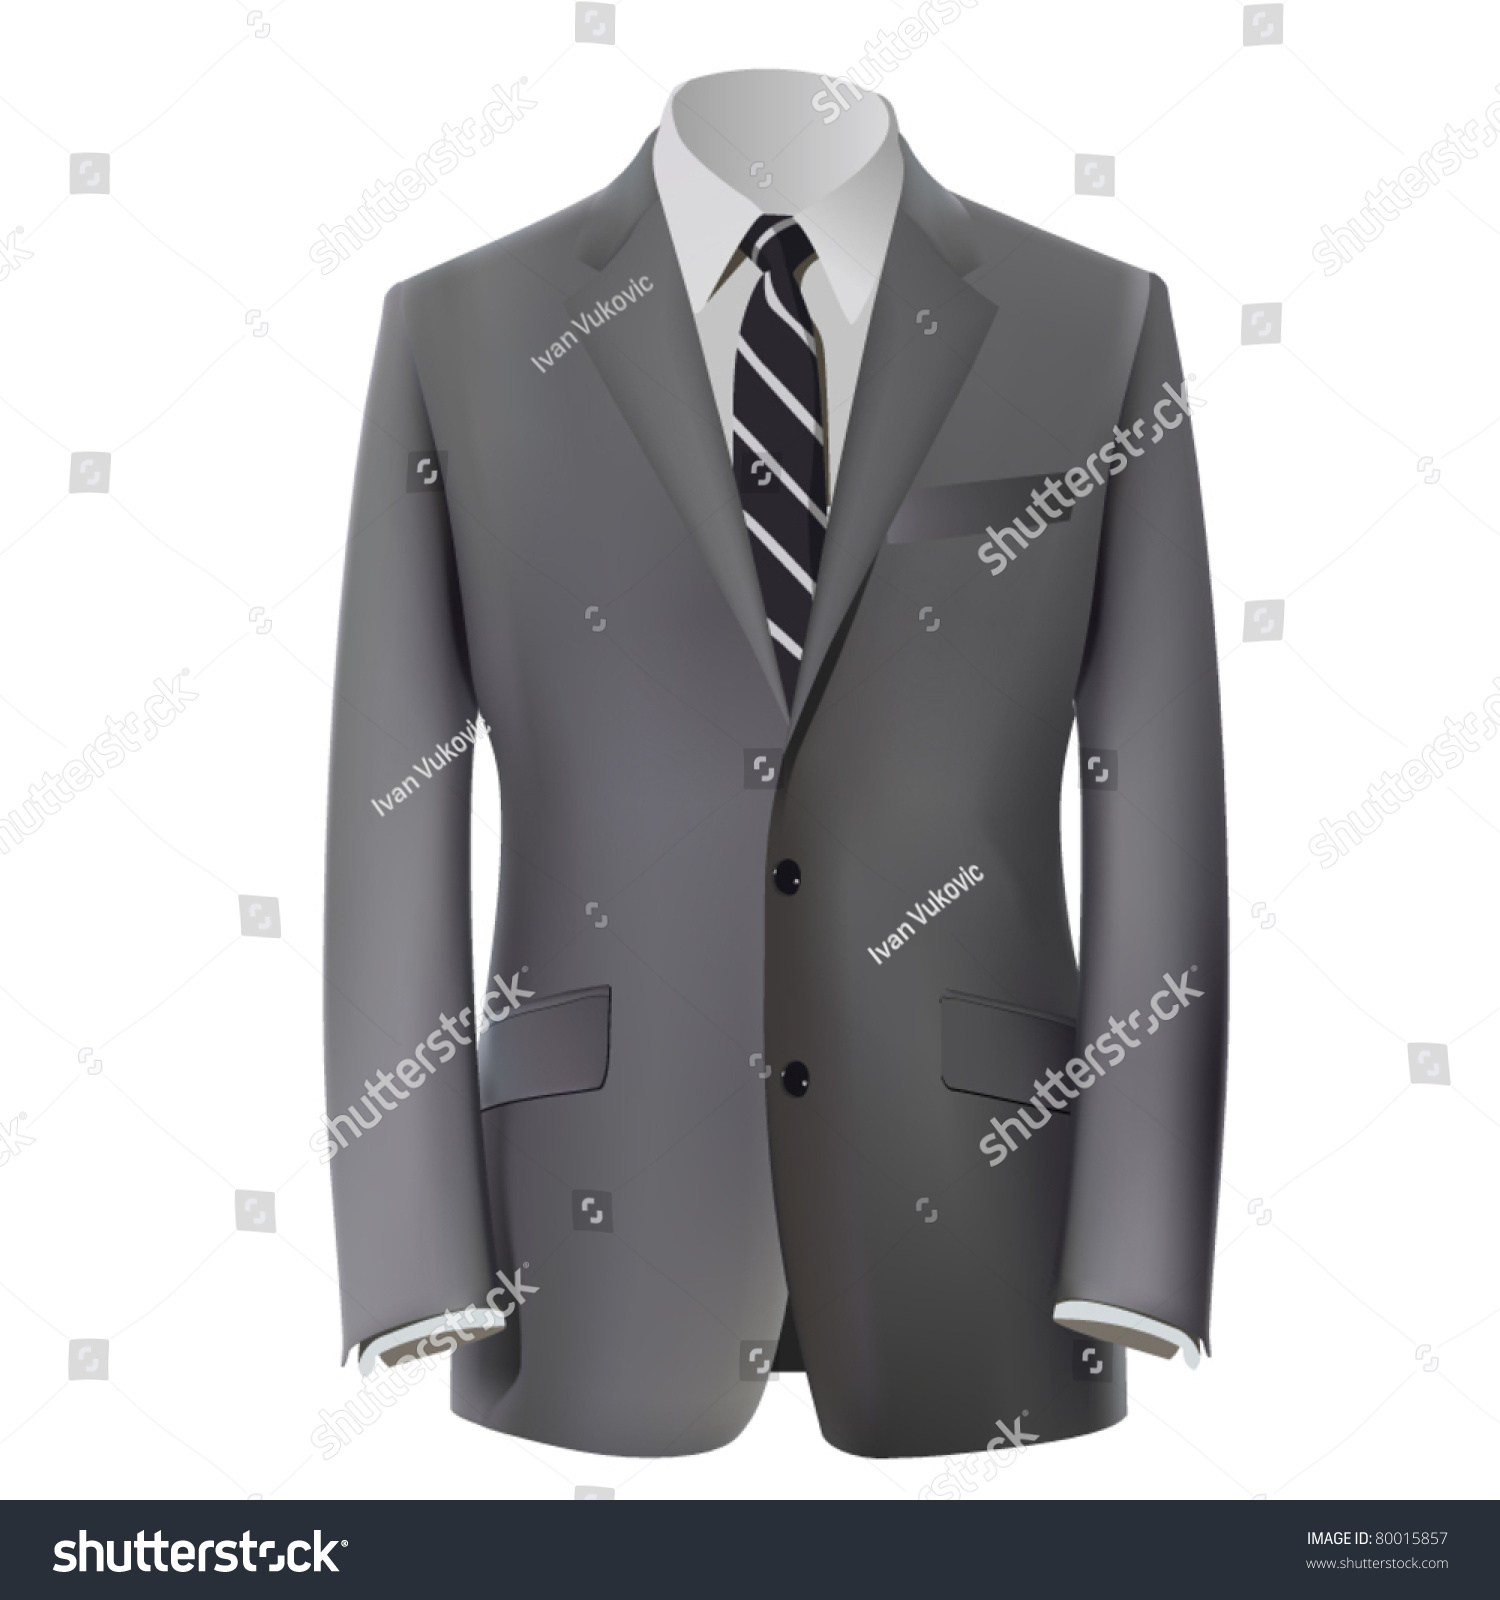 Vector grey business suit tie stock vector 80015857 shutterstock vector grey business suit with a tie ccuart Choice Image